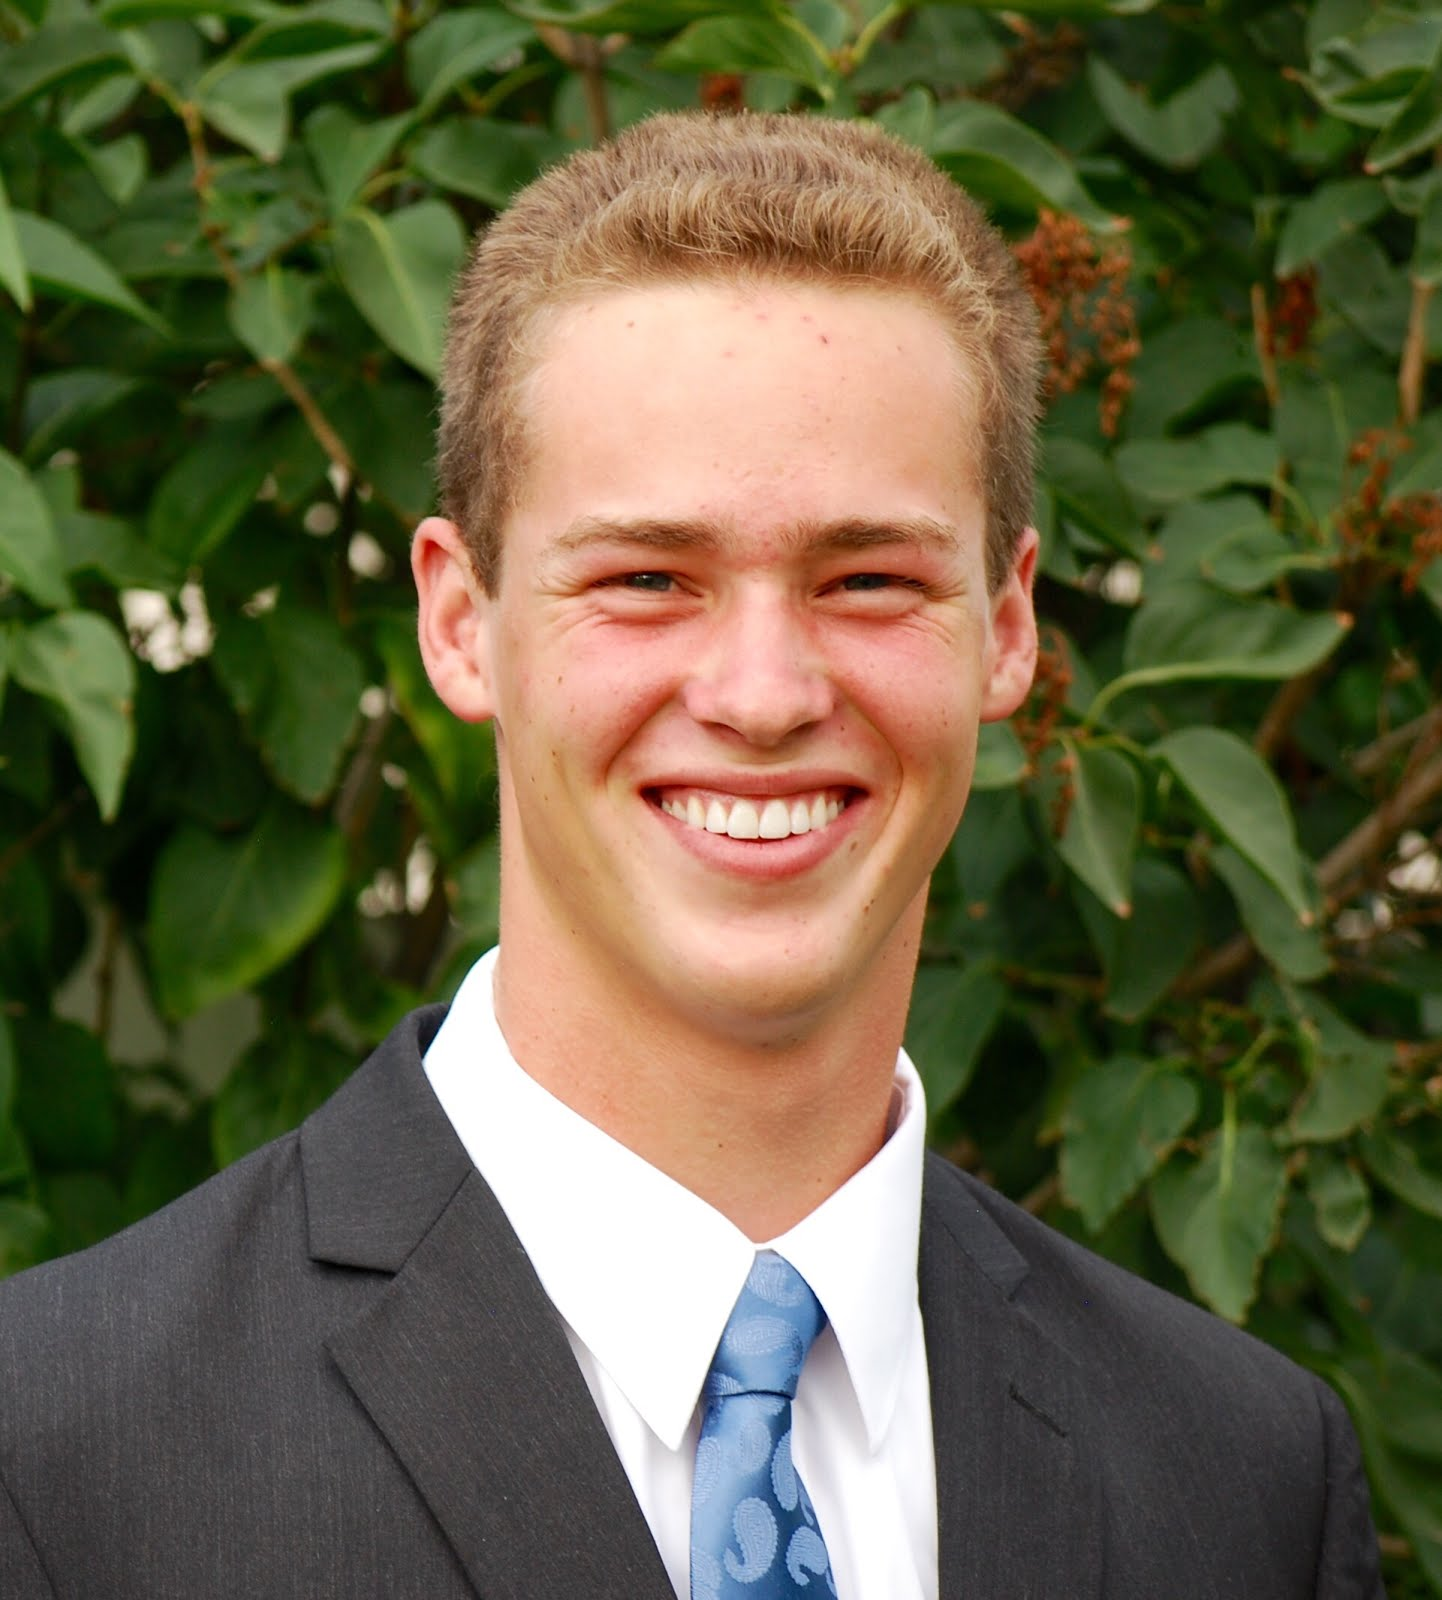 Elder Jacob West